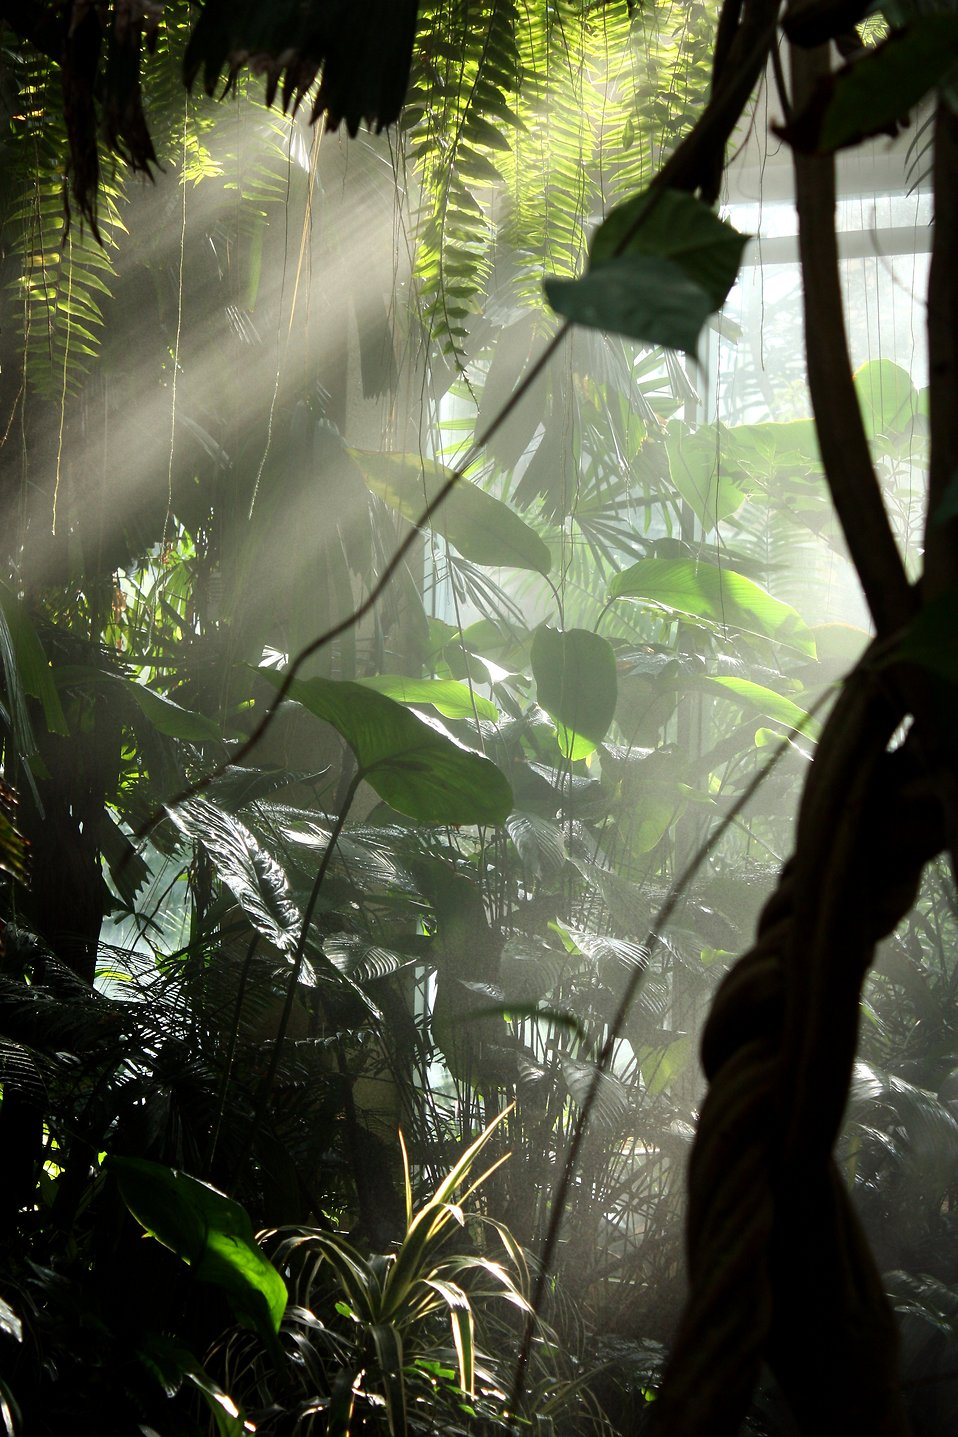 Sunlight shining through mist and tropical foliage : Free Stock Photo